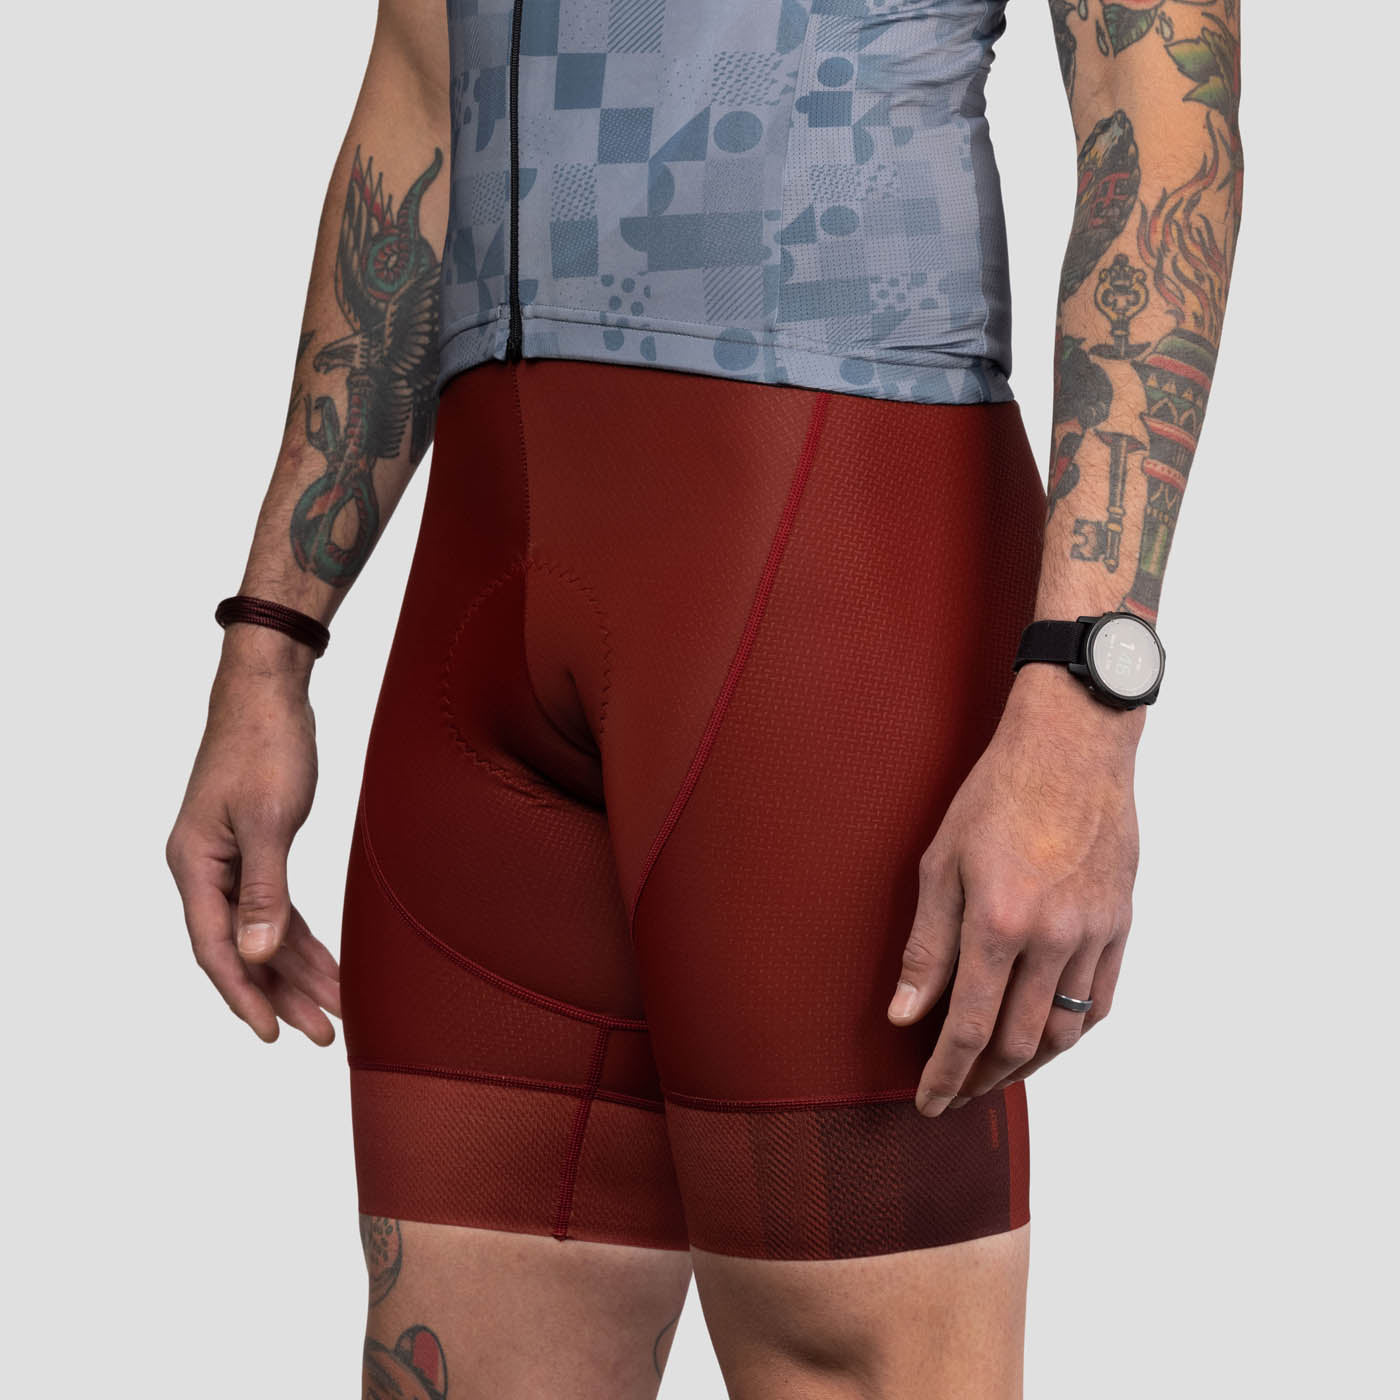 House Bib Shorts - Mesa